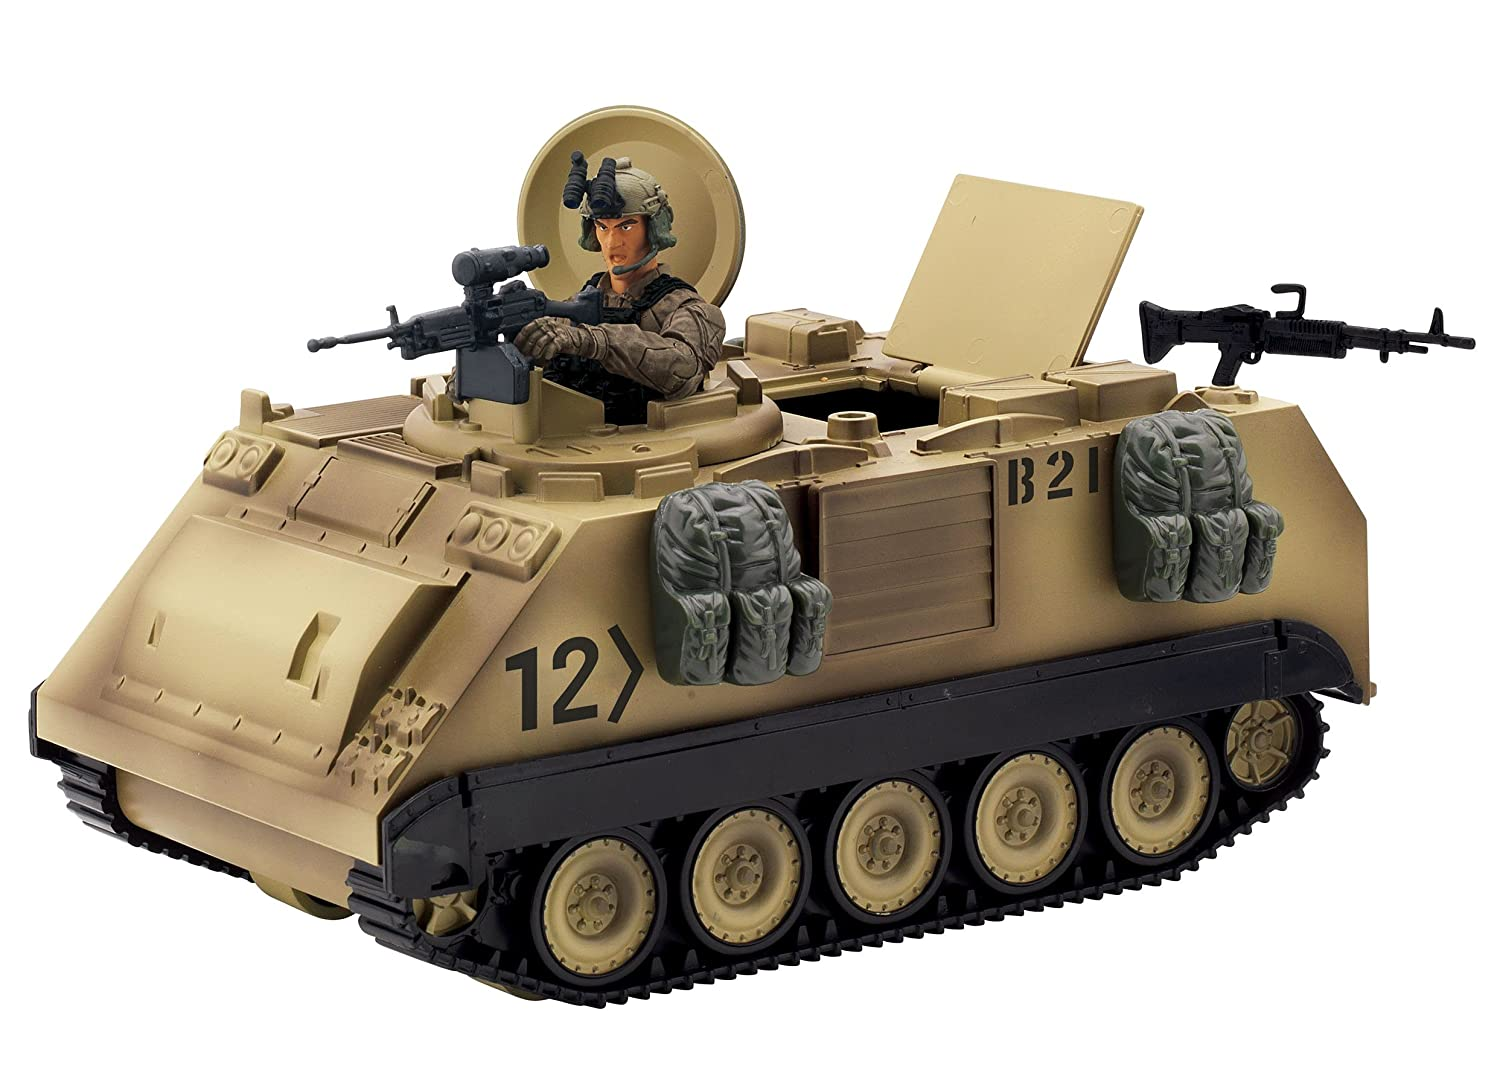 Sunny Days Entertainment Blue Box Toys The Elite Force M113 Desert Armored Military Vehicle Blue Box (Toys) 101857